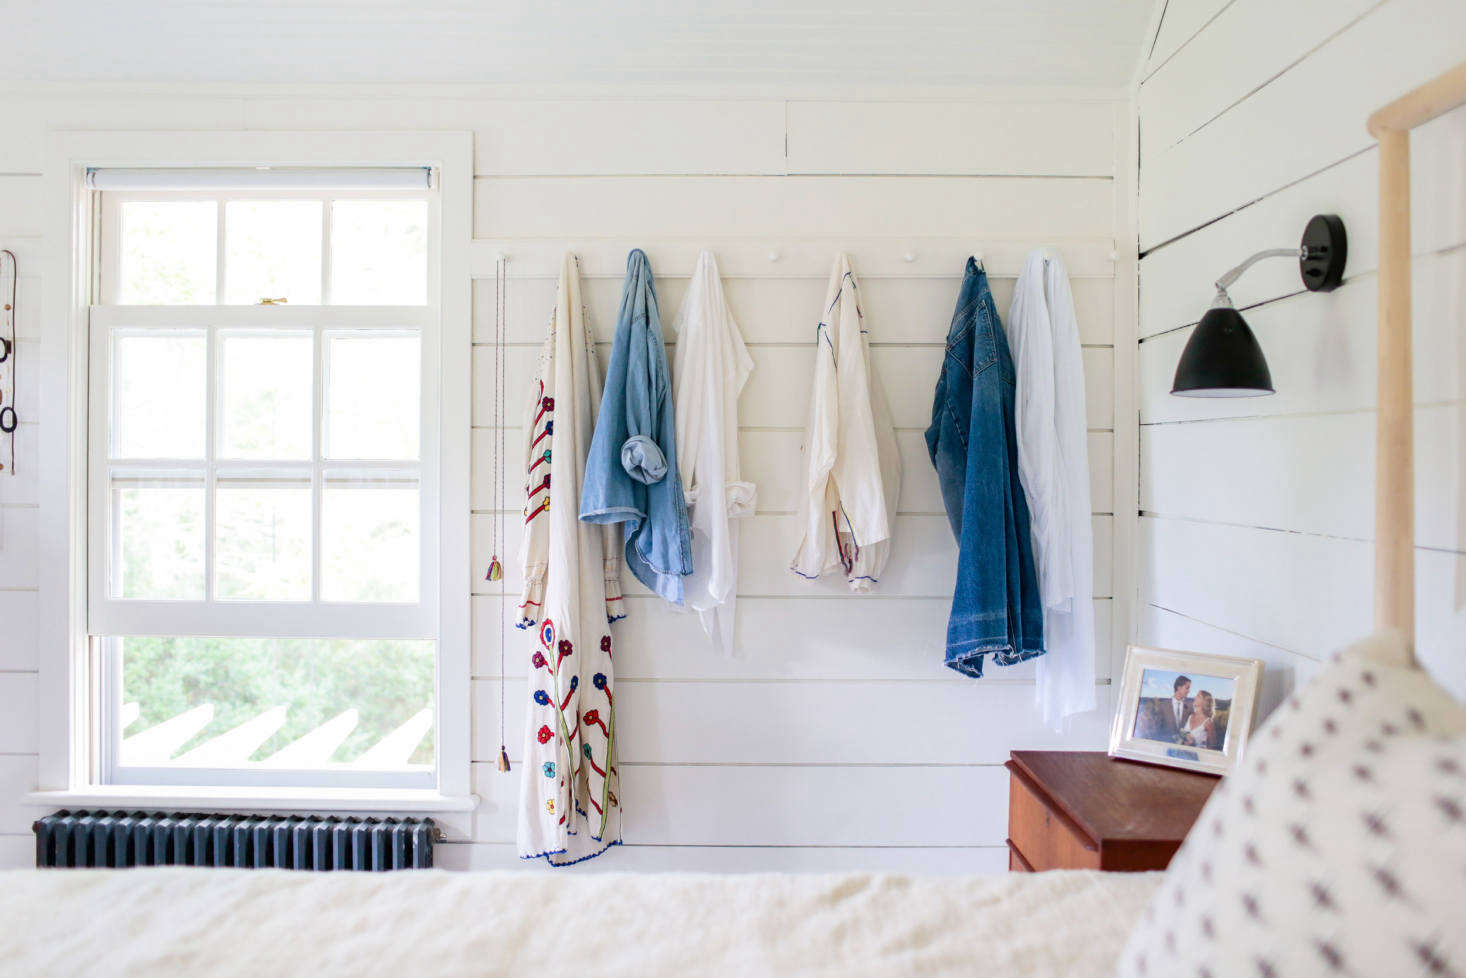 Elizabeth added a row of Shaker peg rails on the far wall of the bedroom (for more, see Christine's post Remodeling 101: How Shaker Peg Rails Saved My Summer Sanity).